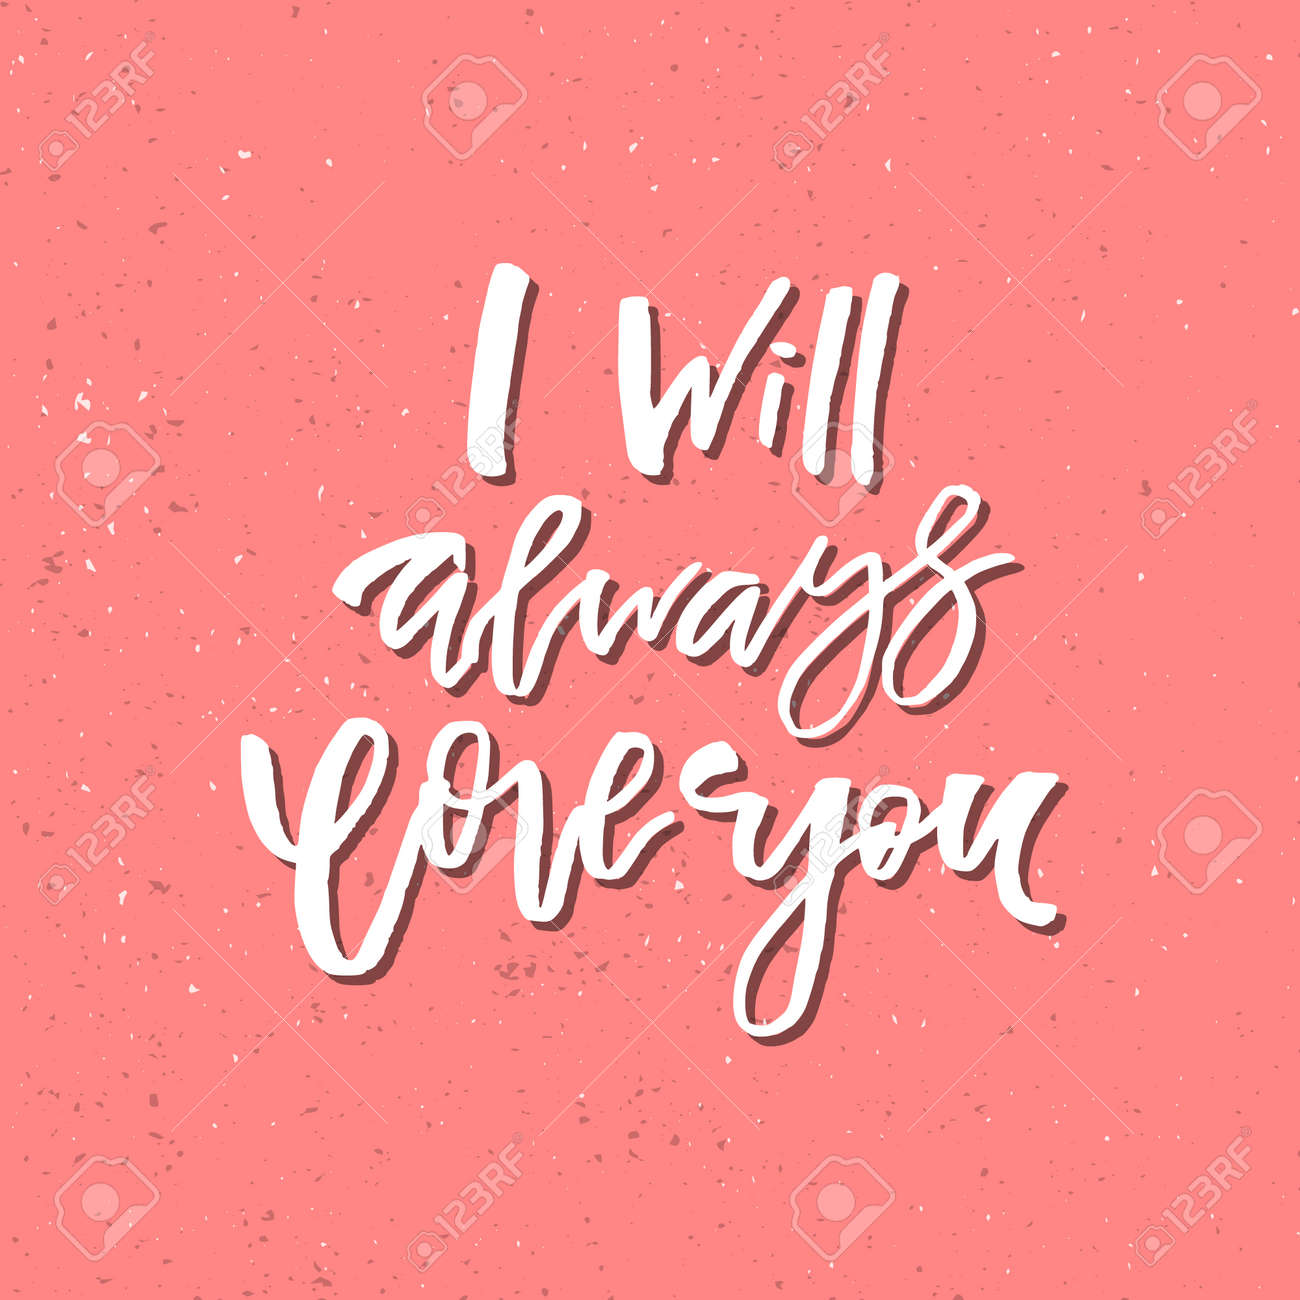 I Will Always Love You Quotes I Will Always Love You  Inspirational Valentines Day Romantic